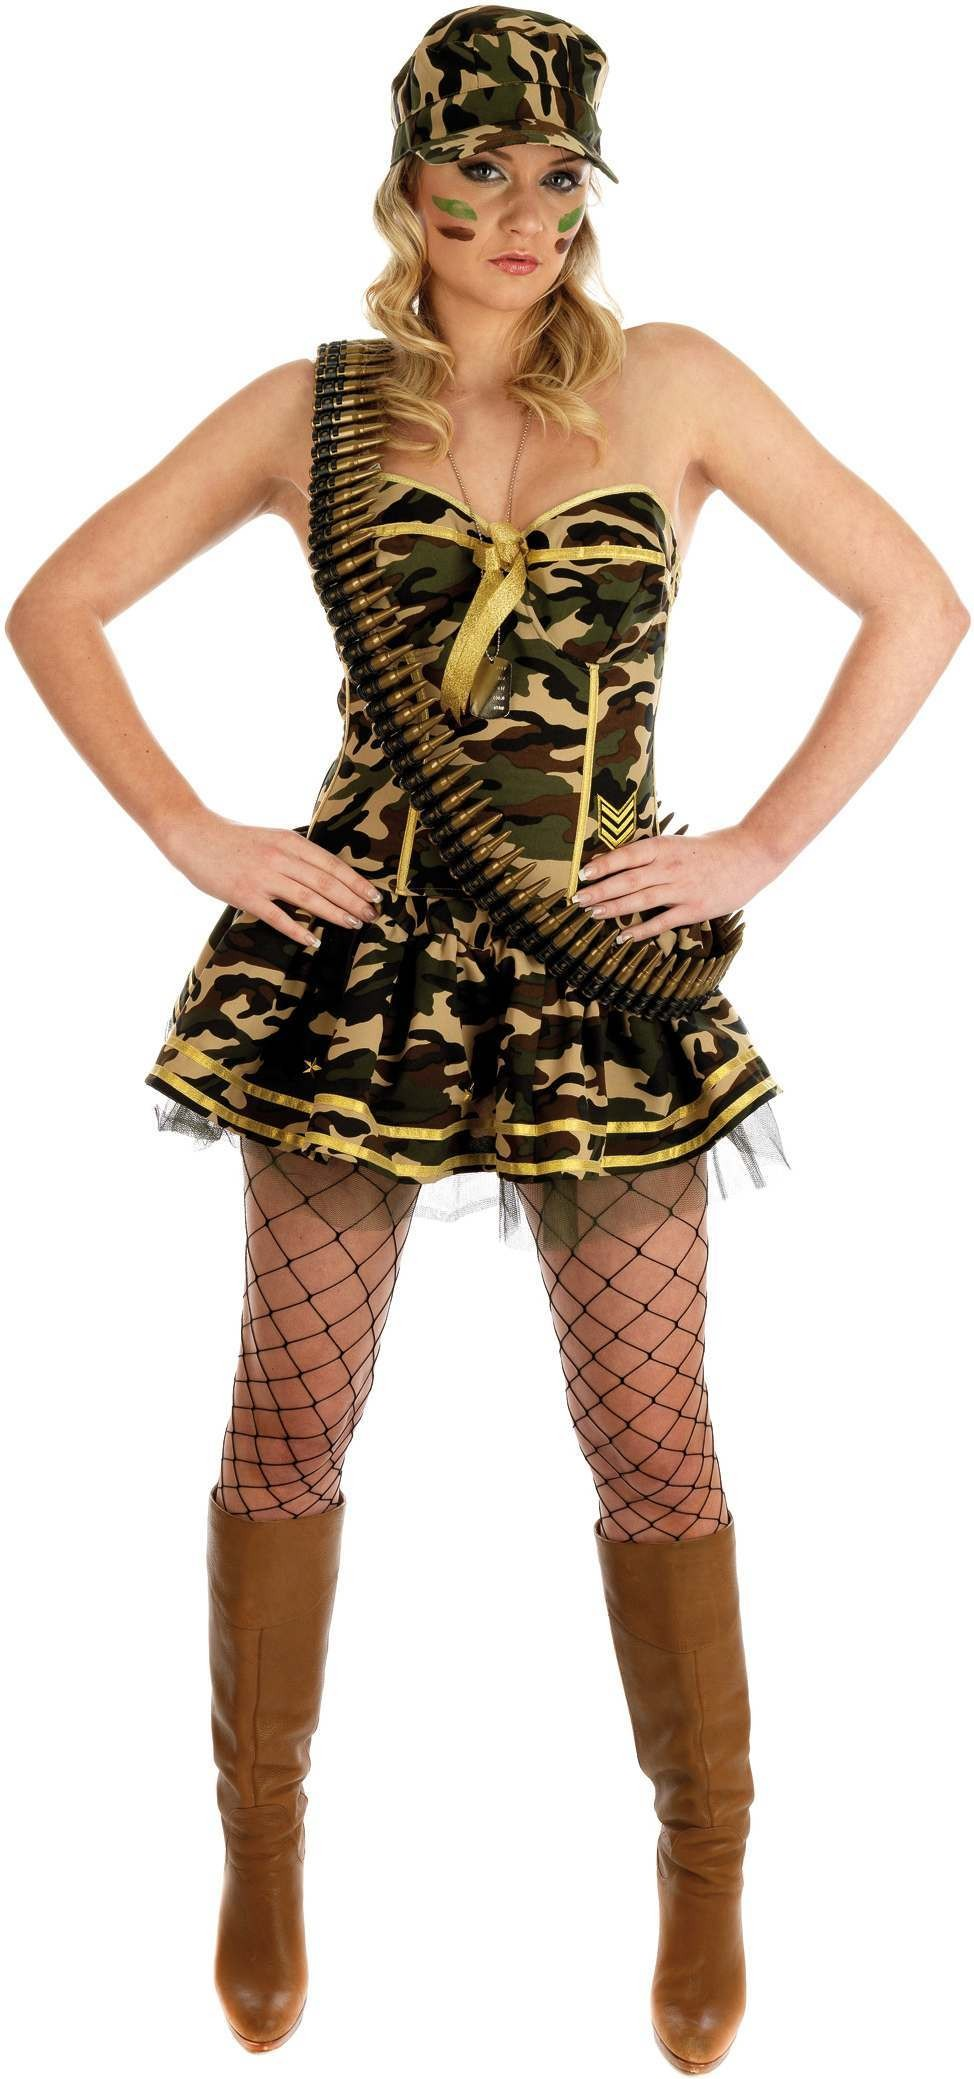 Commando Girl Fancy Dress Costume Ladies (Army)